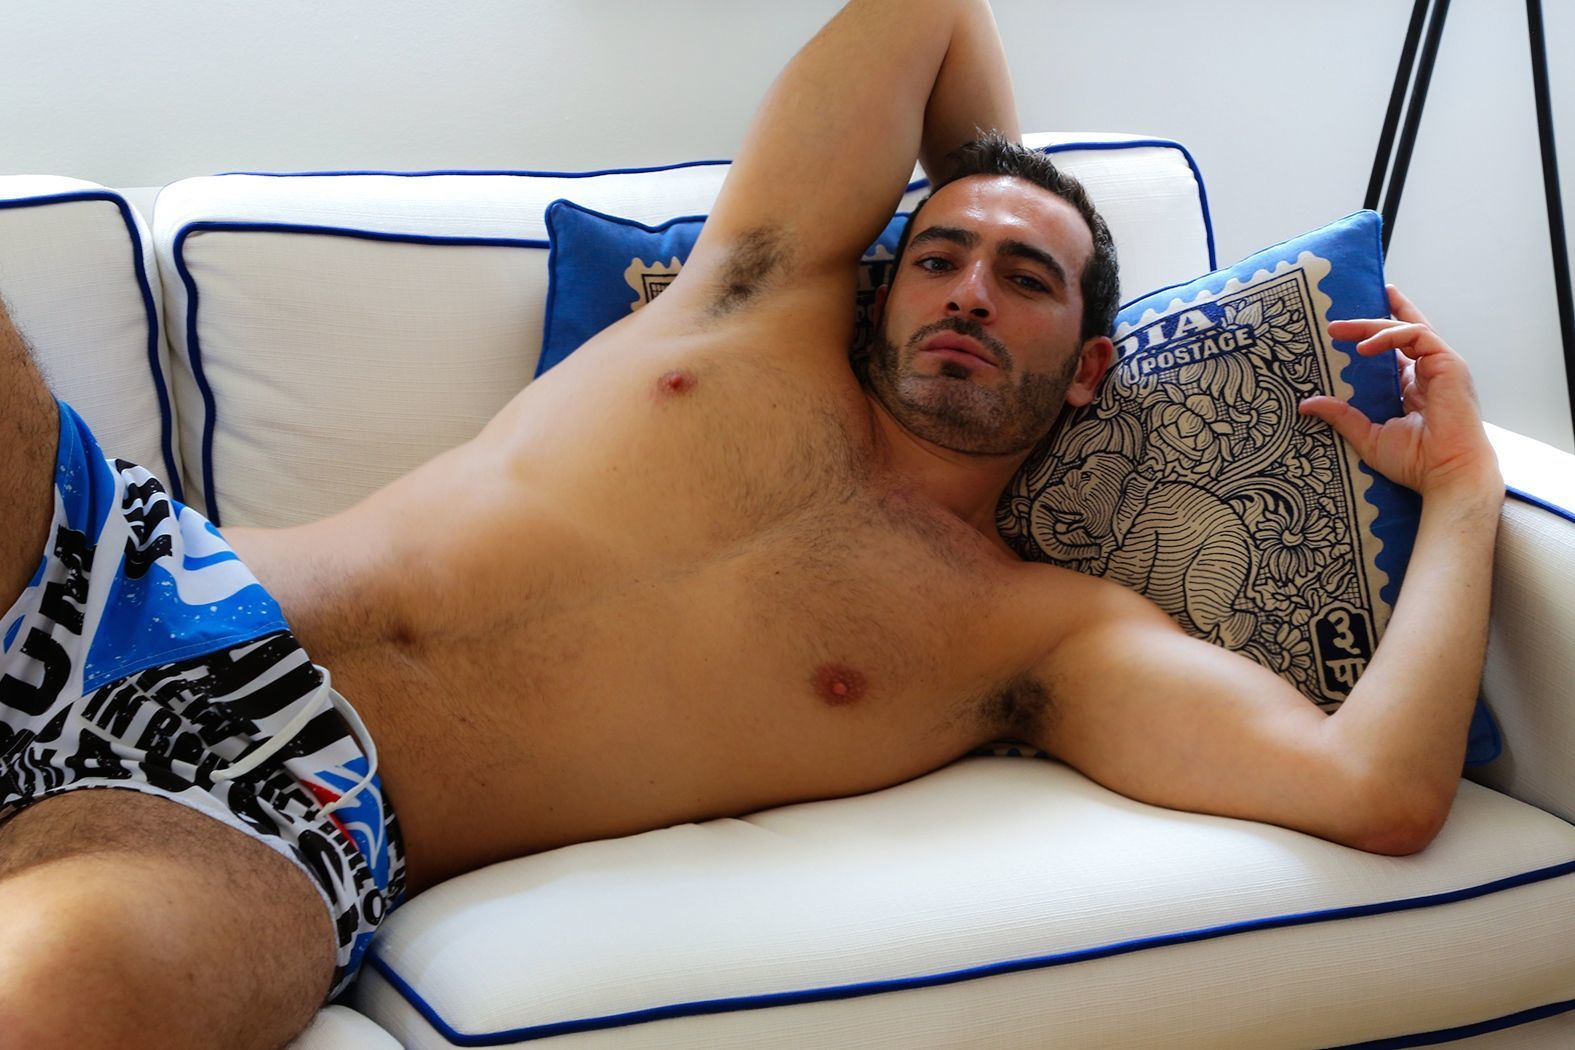 french gay video escort gentilly